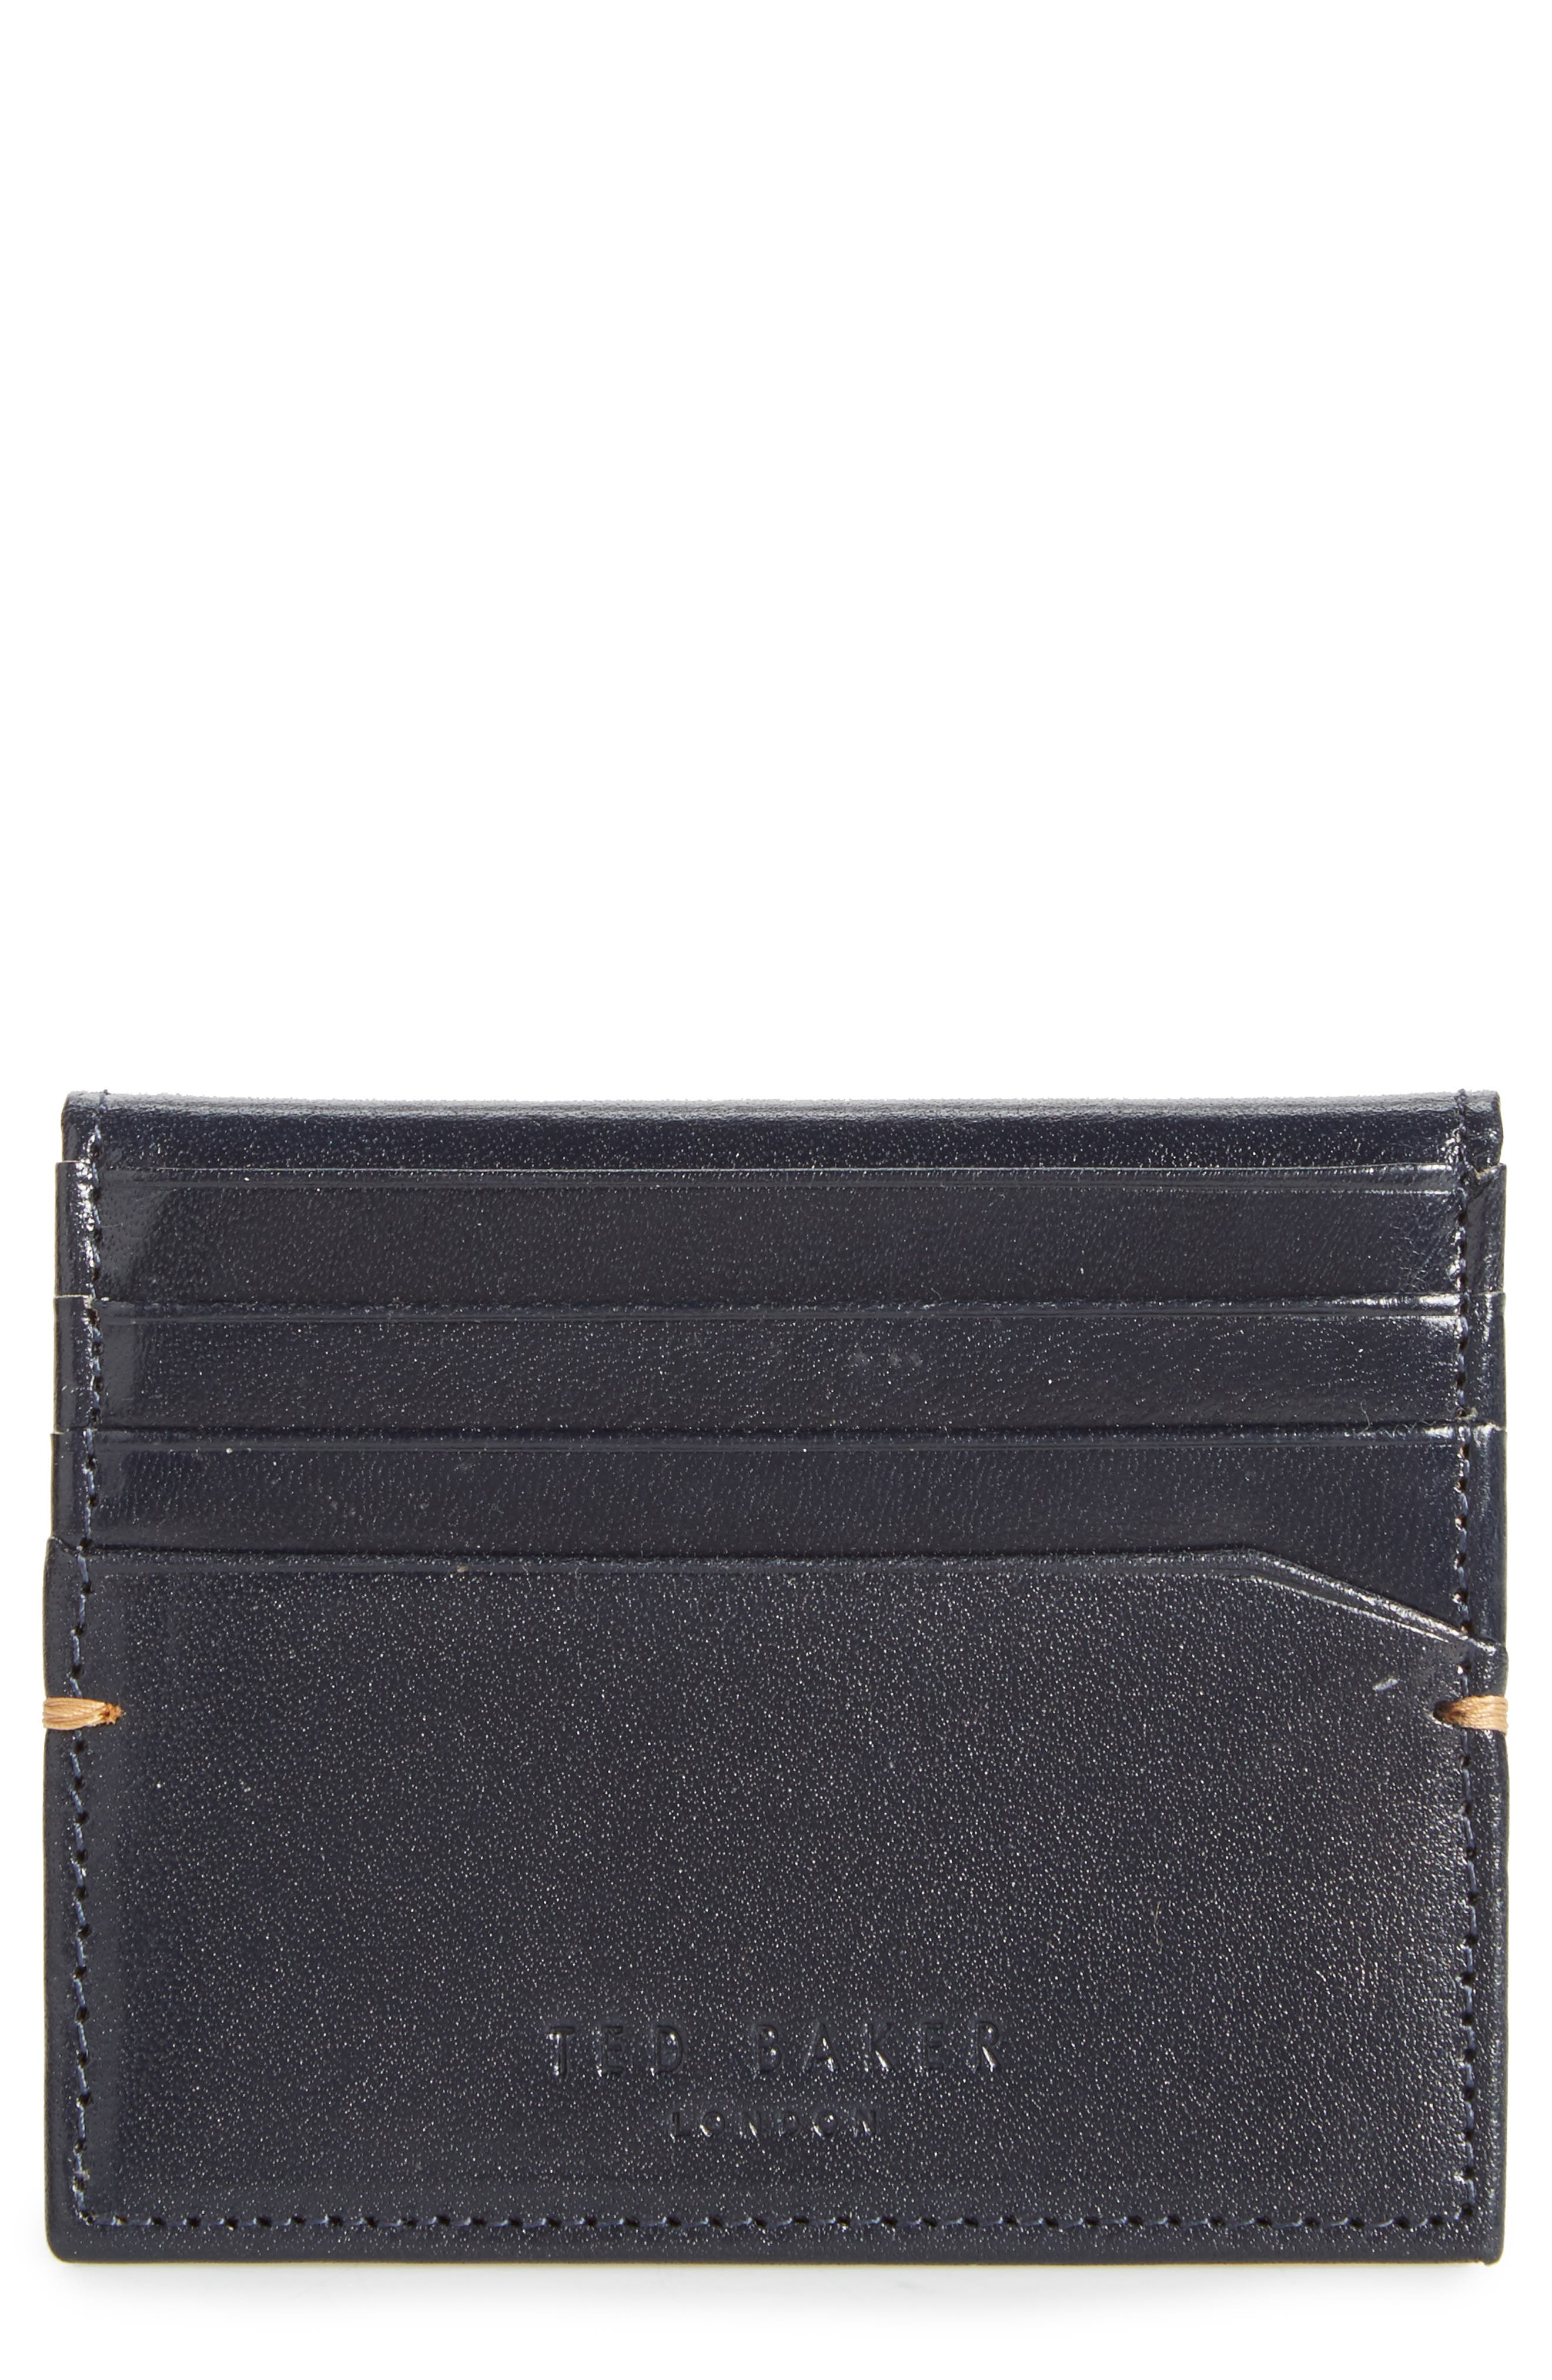 Alternate Image 1 Selected - Ted Baker London Brights Leather Card Case